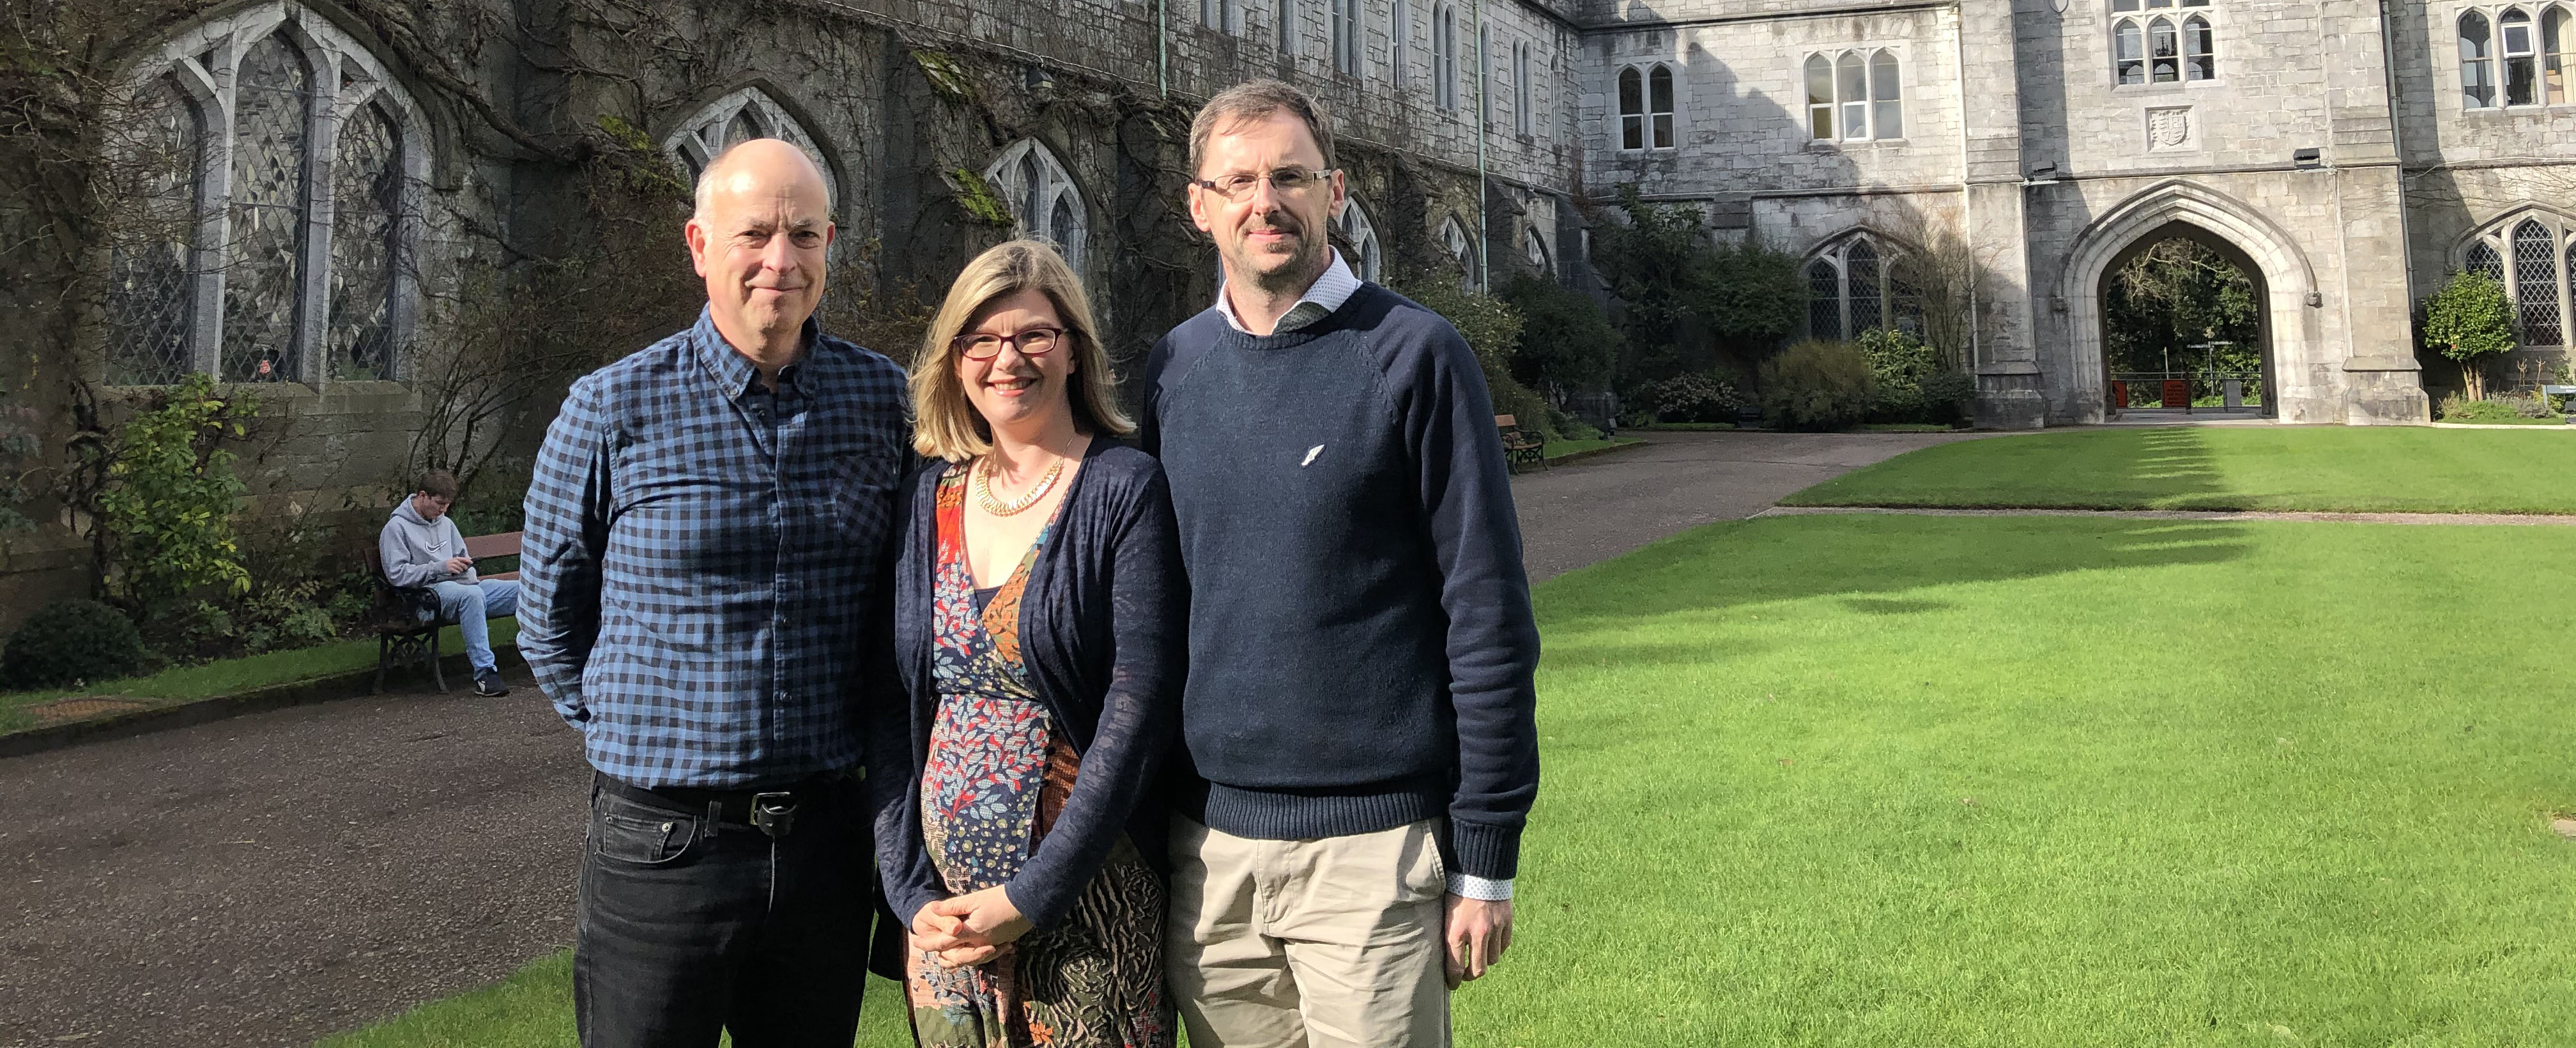 Dr Kenneth Burns, Dr Siobhan O'Sullivan and Professor Alastair Christie of the School of Applied Social Studies